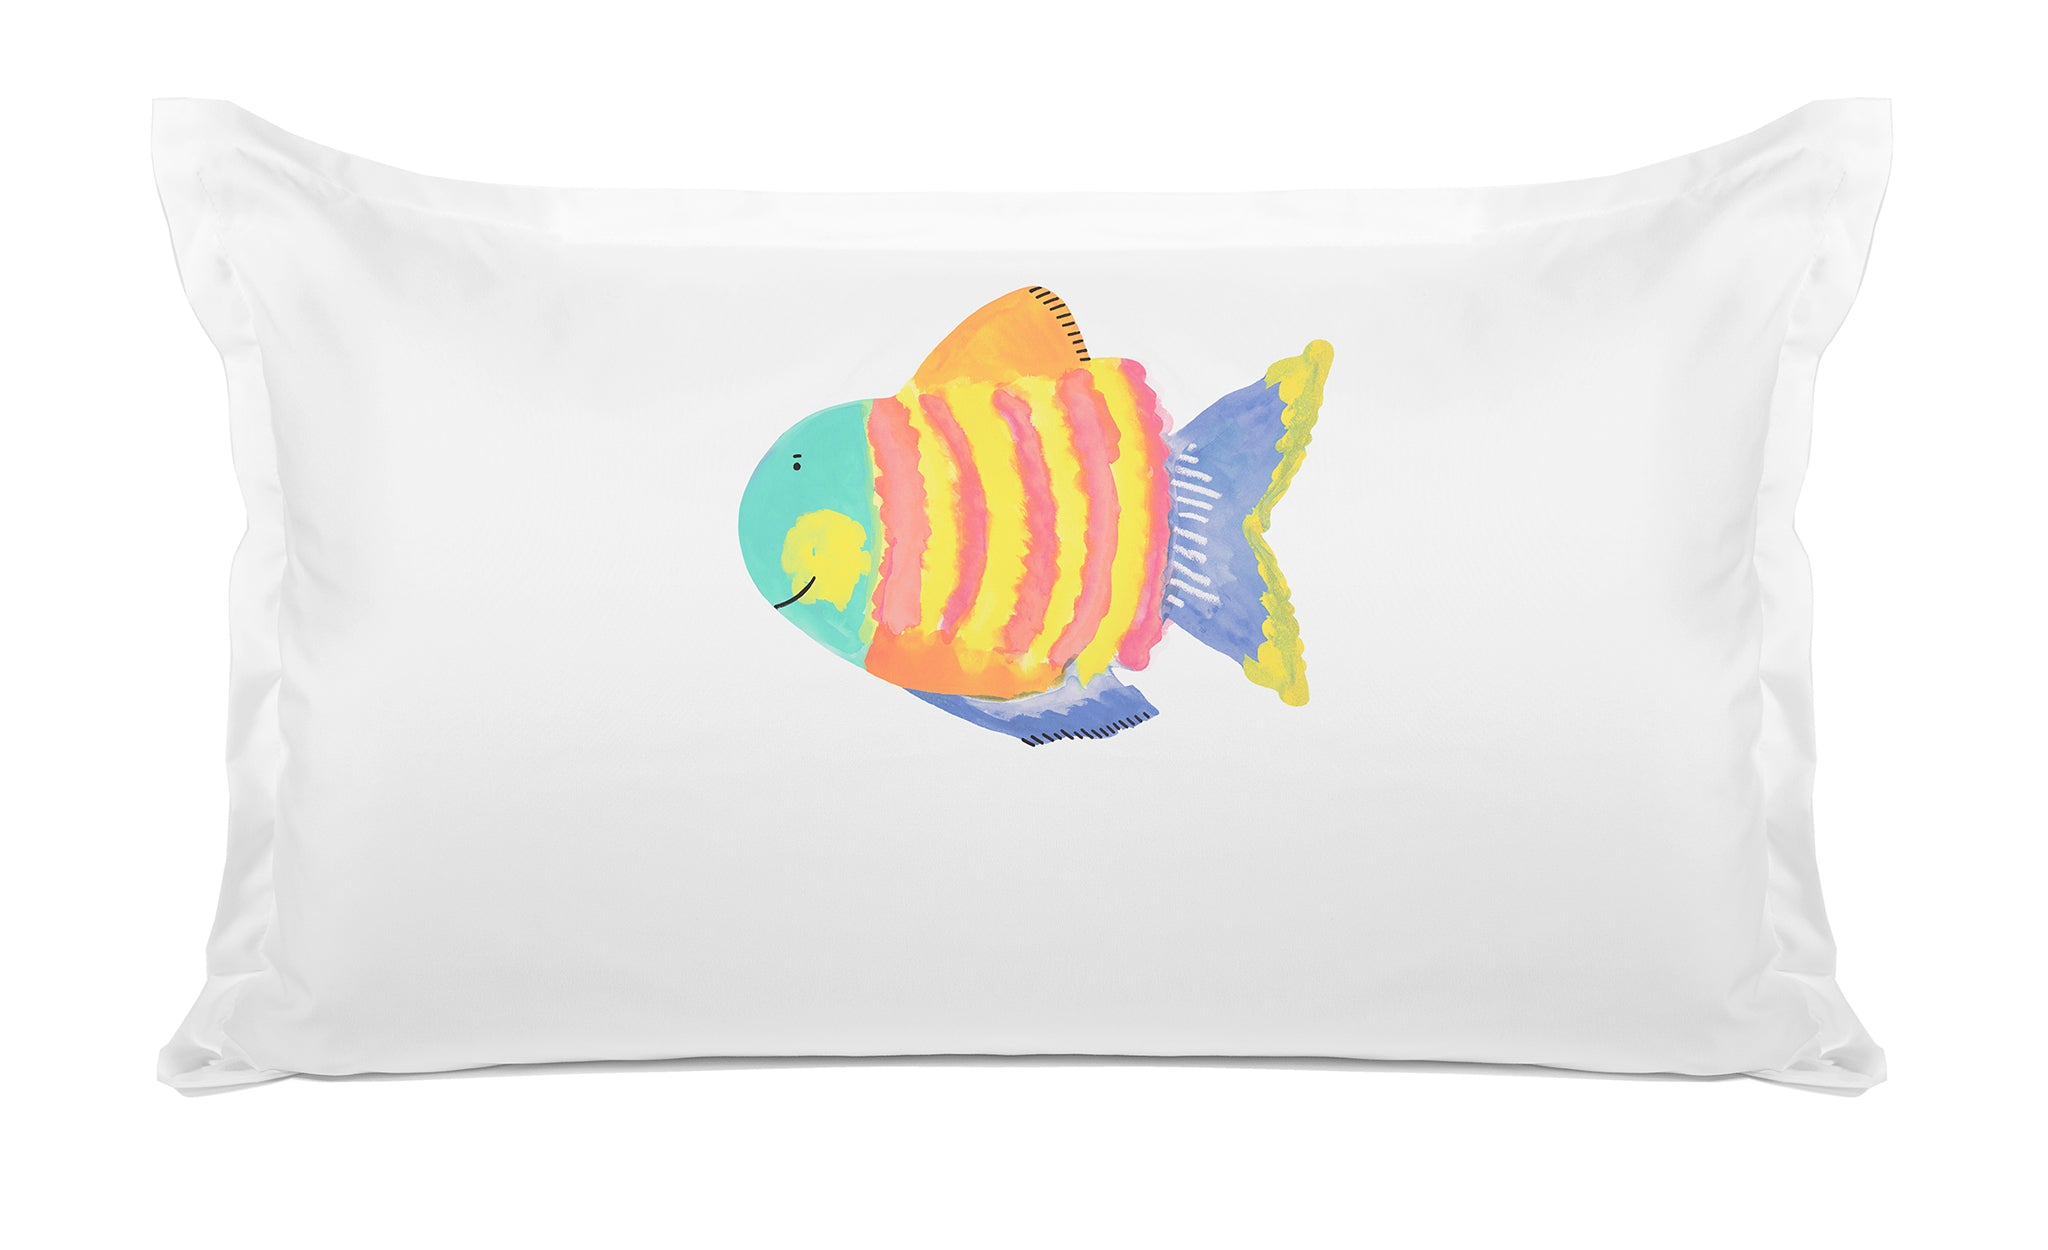 Hubble Bubble - Personalized Kids Pillowcase Collection-Di Lewis